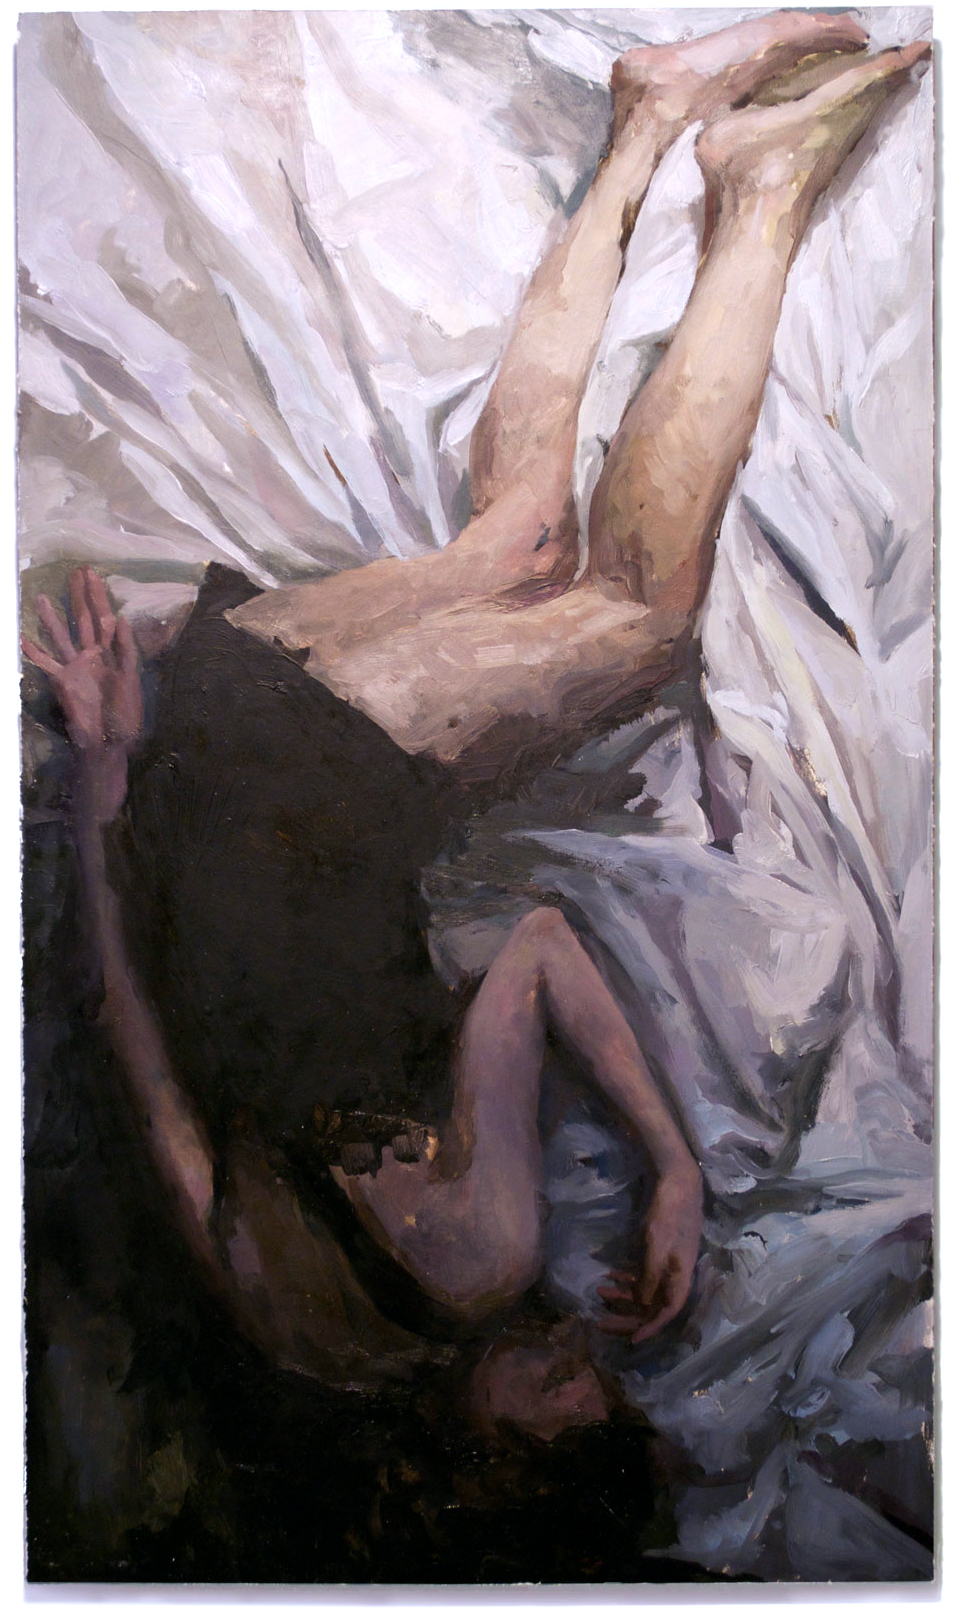 Sleeper , oil on board, 30x17in, 2012